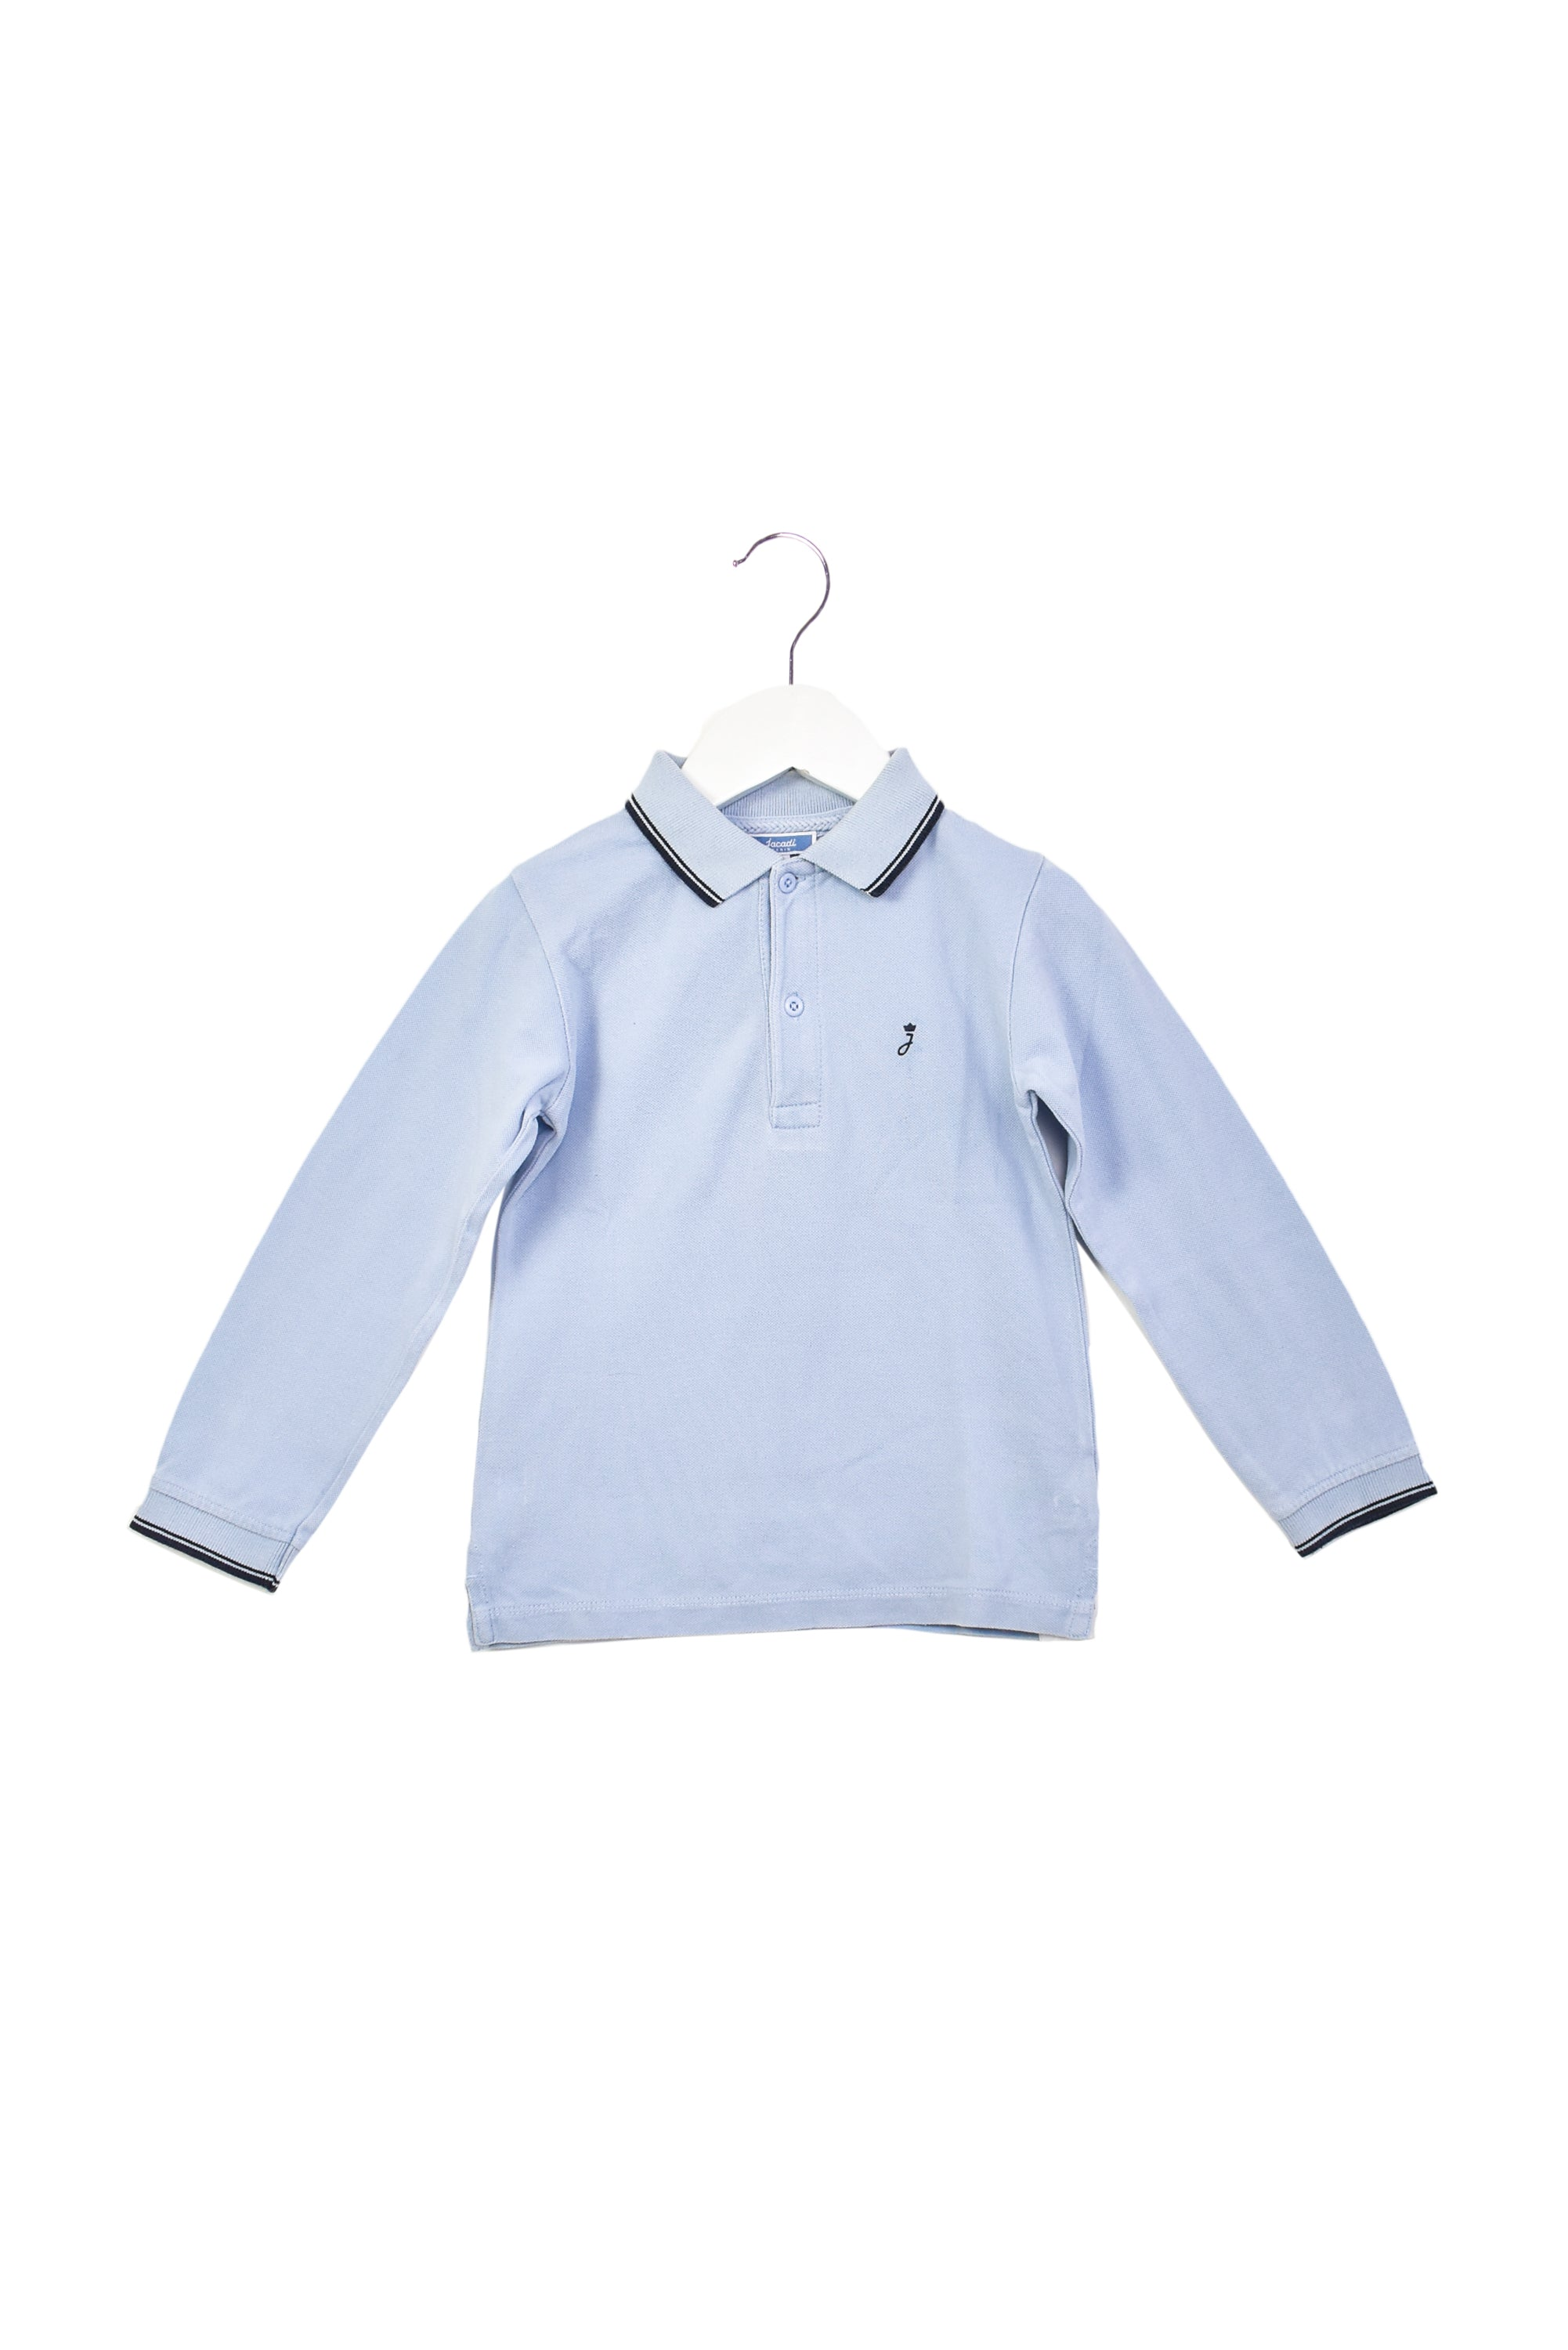 10013374 Jacadi Kids ~ Polo 4T at Retykle